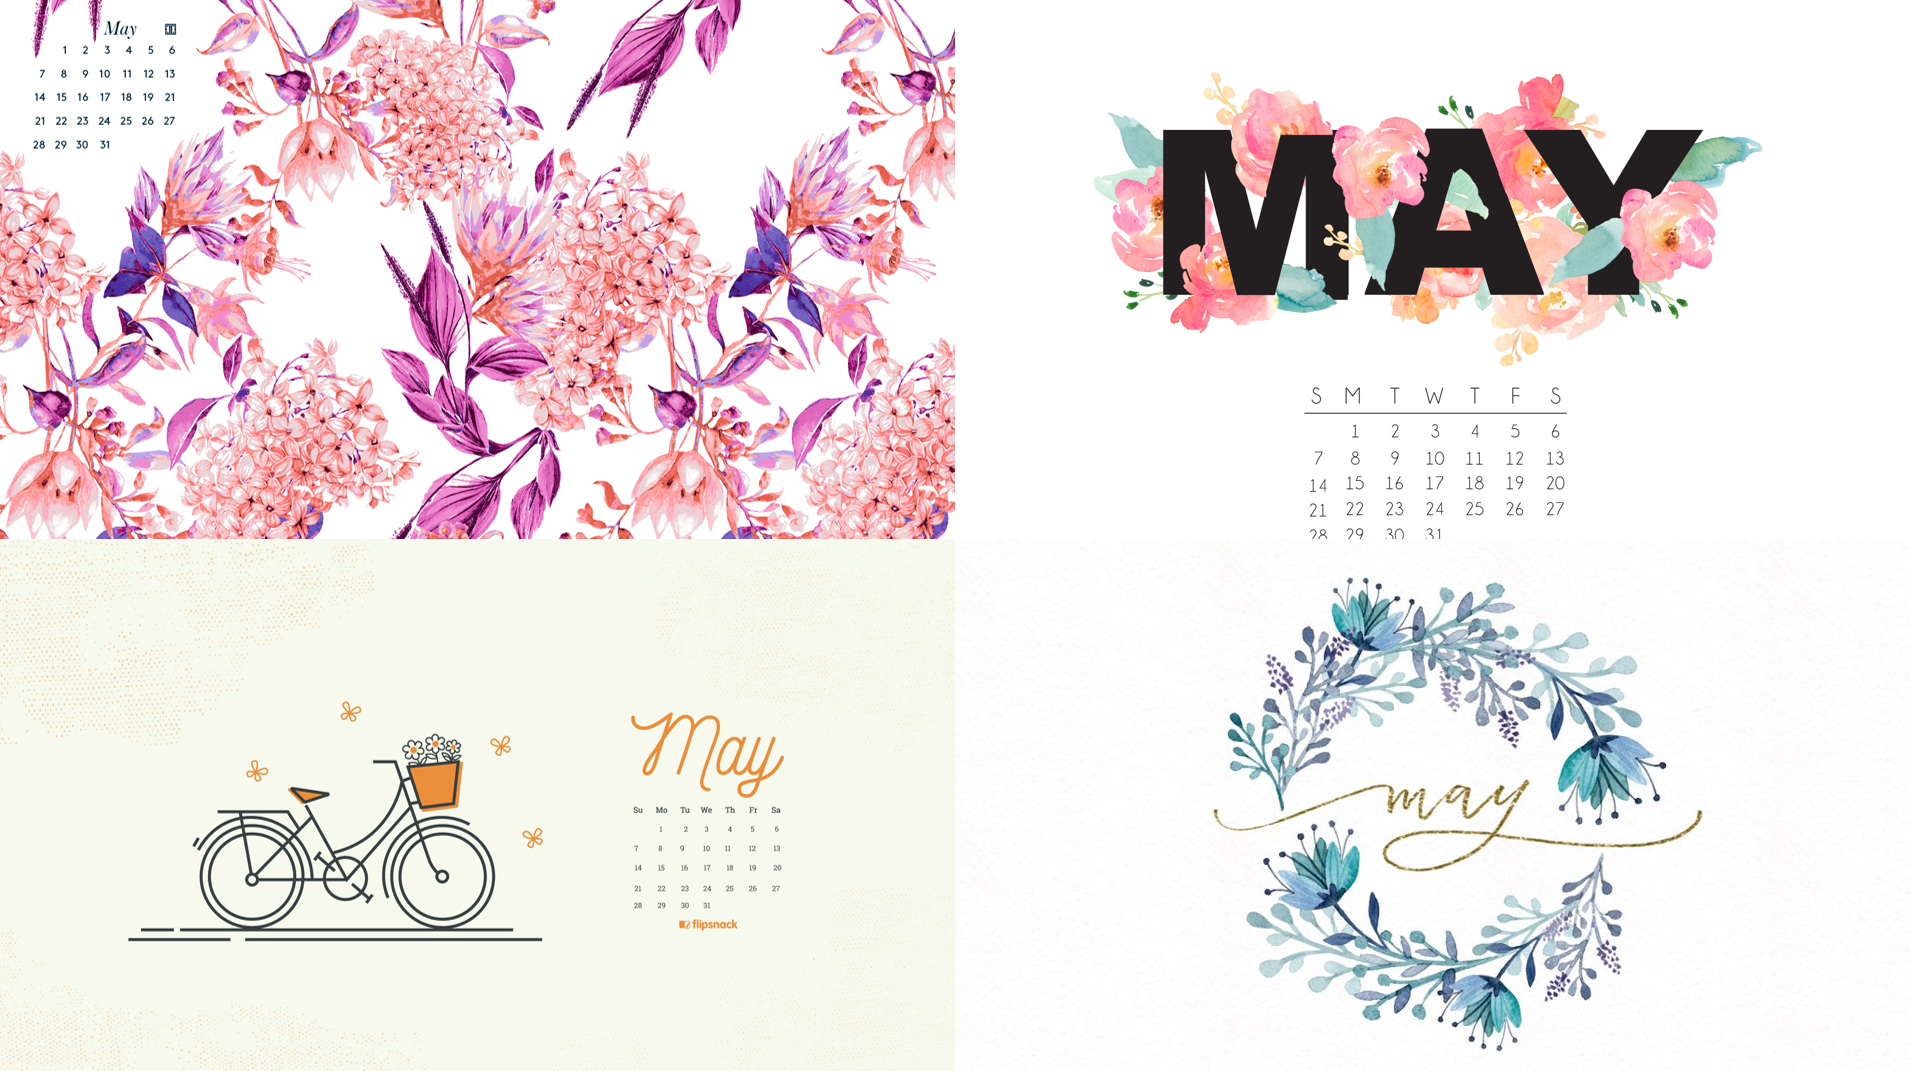 Calendar Design Wallpaper : May calendar wallpapers blazers and blue jeans